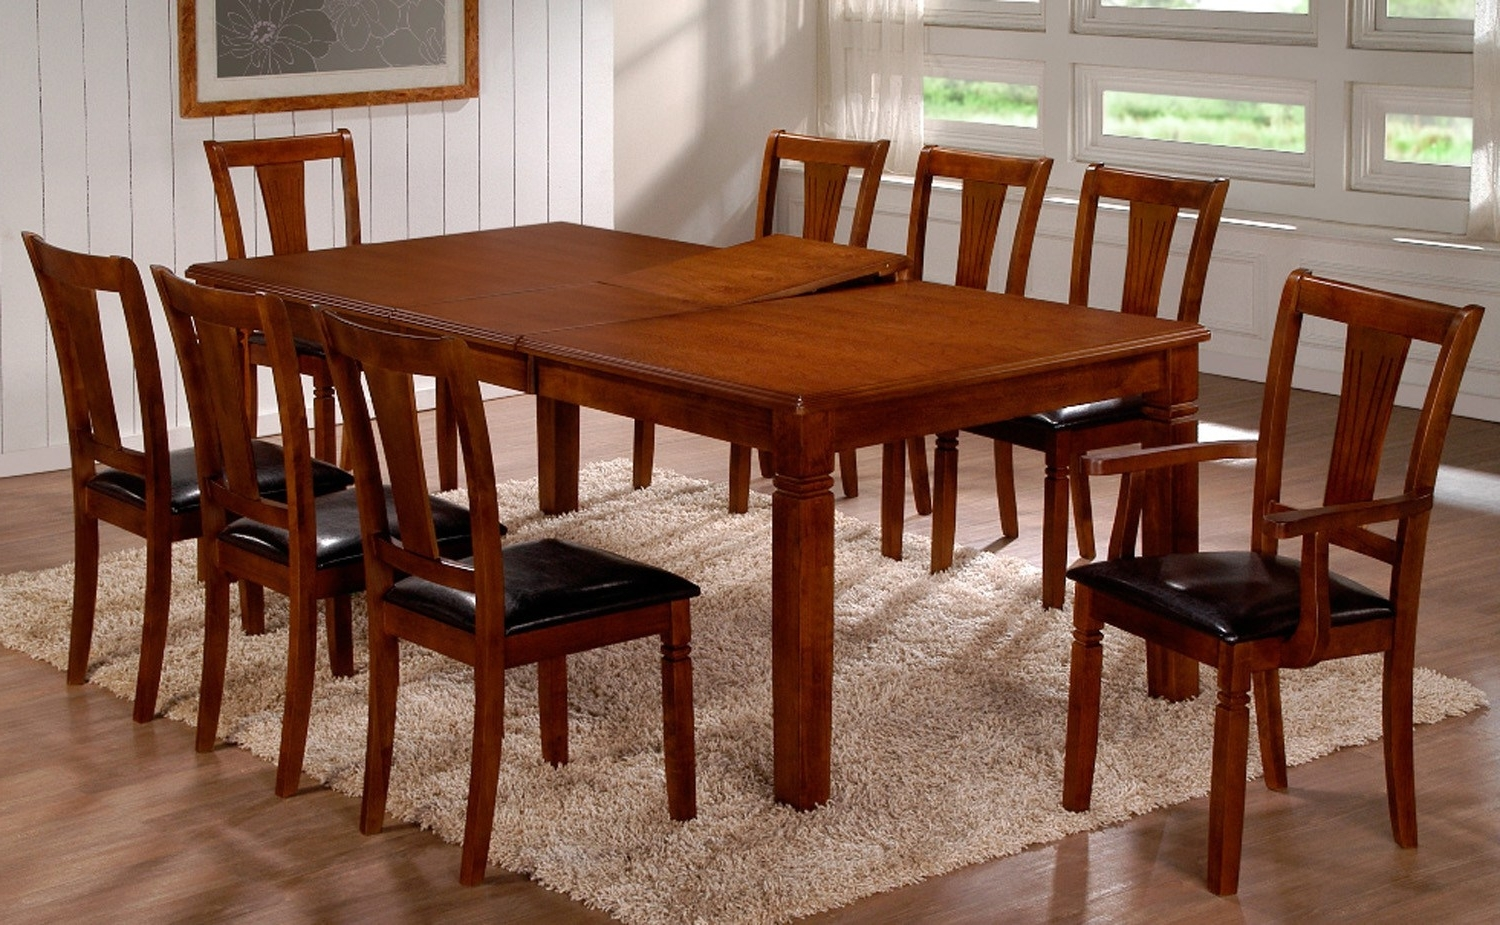 Dining Tables Seats 8 Inside Preferred Dining Table Set For 8 – Castrophotos (Gallery 10 of 25)